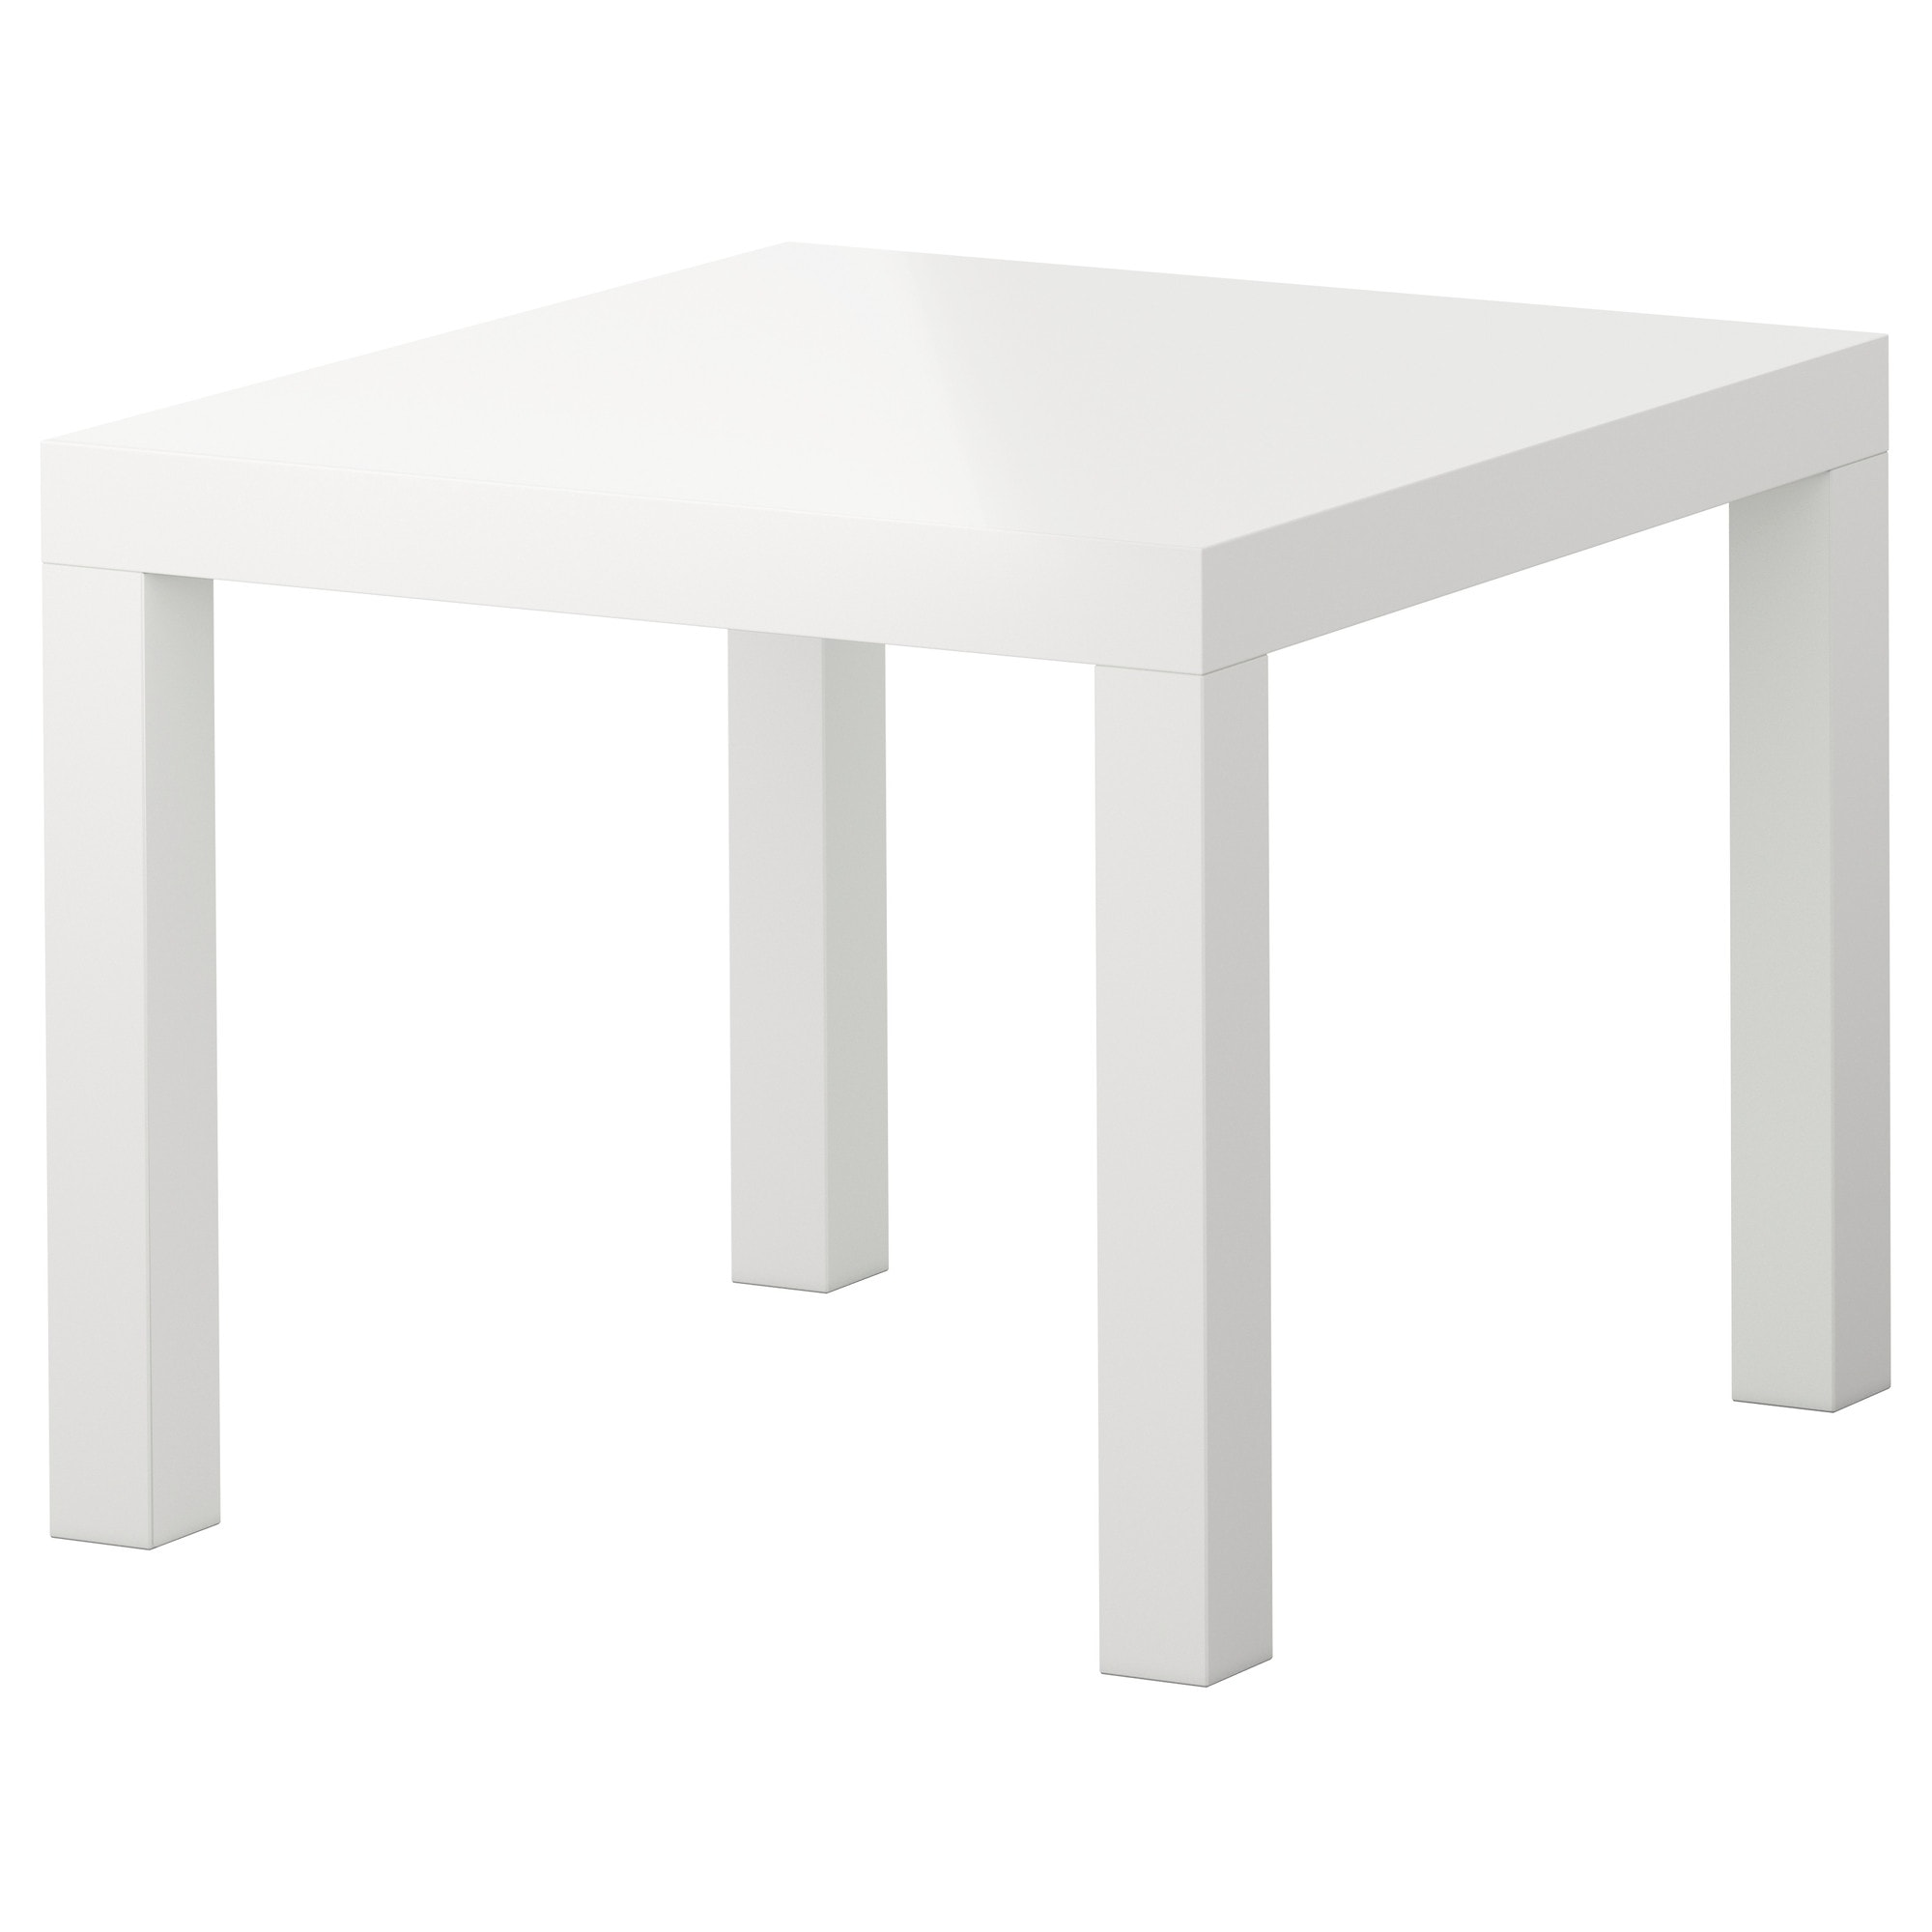 Connu LACK Table d'appoint - brillant blanc - IKEA GC41